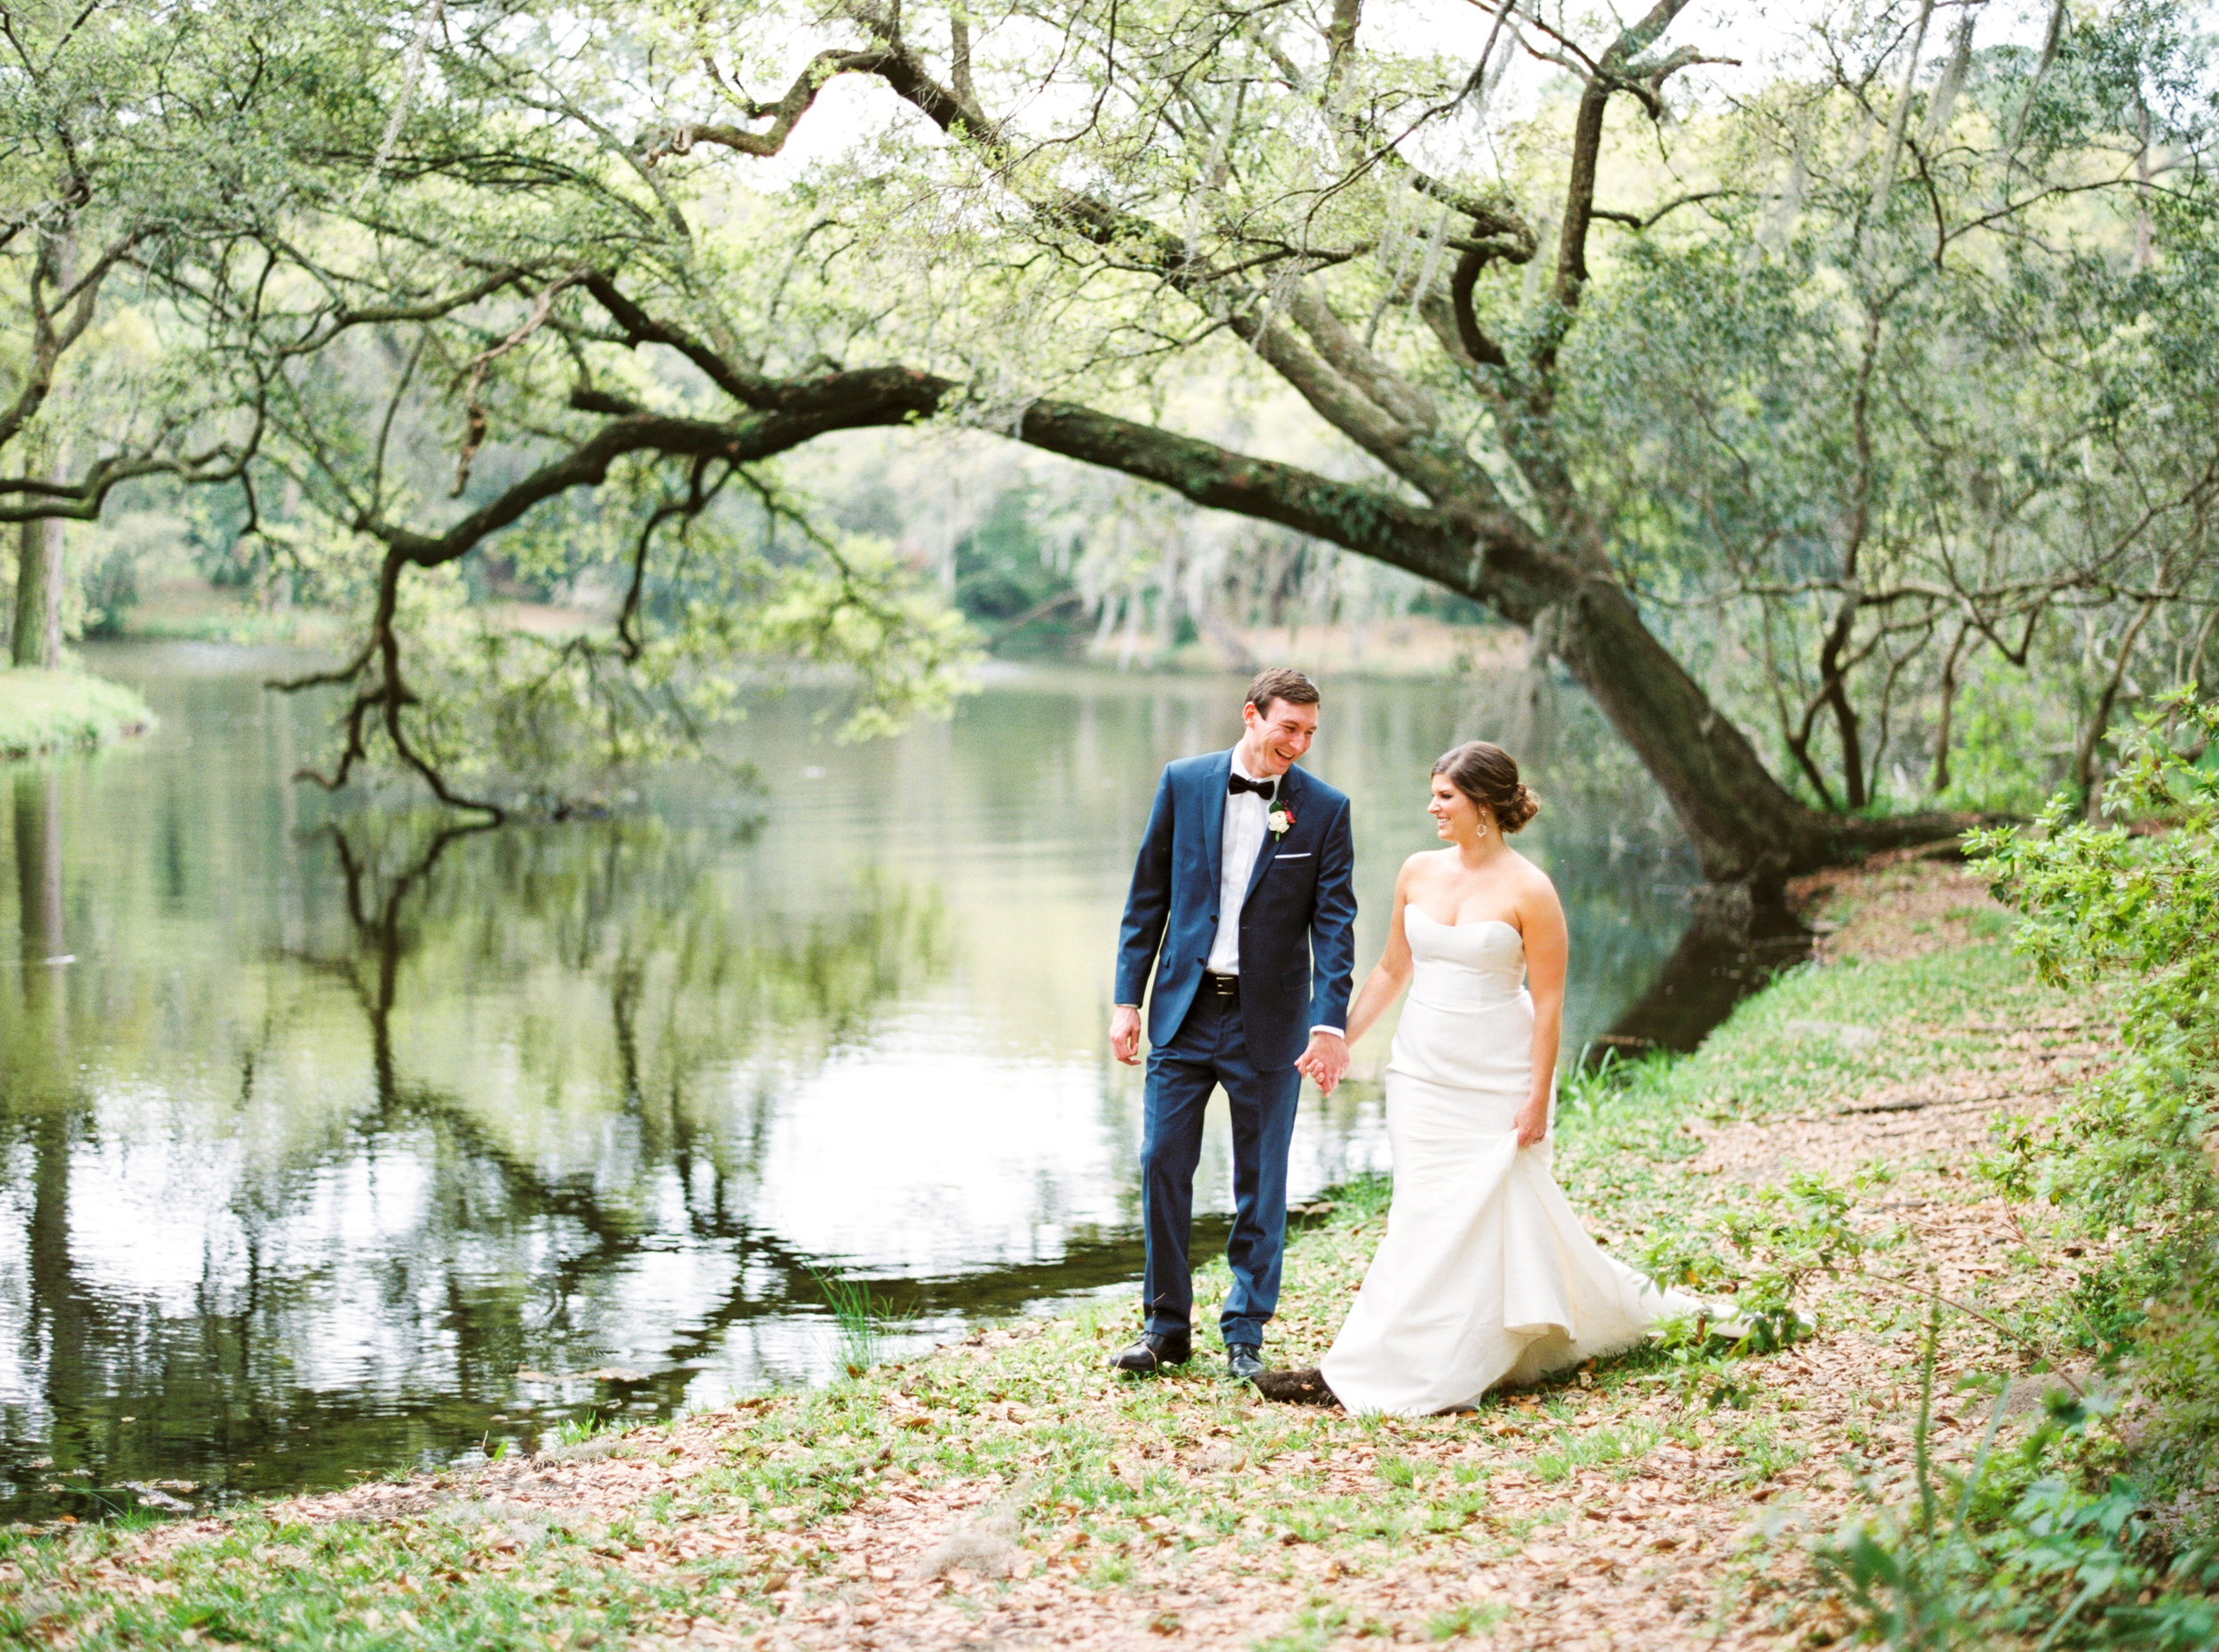 kathleen_and_joe_atkins_jo_photo_pv_takeover_contax645_fuji400h_legare_waring_house_charleston_south_carolina_lashes_and_lace_white_on_daniel_island_mod_events_charleston_sp3000_photovisionprints.jpg